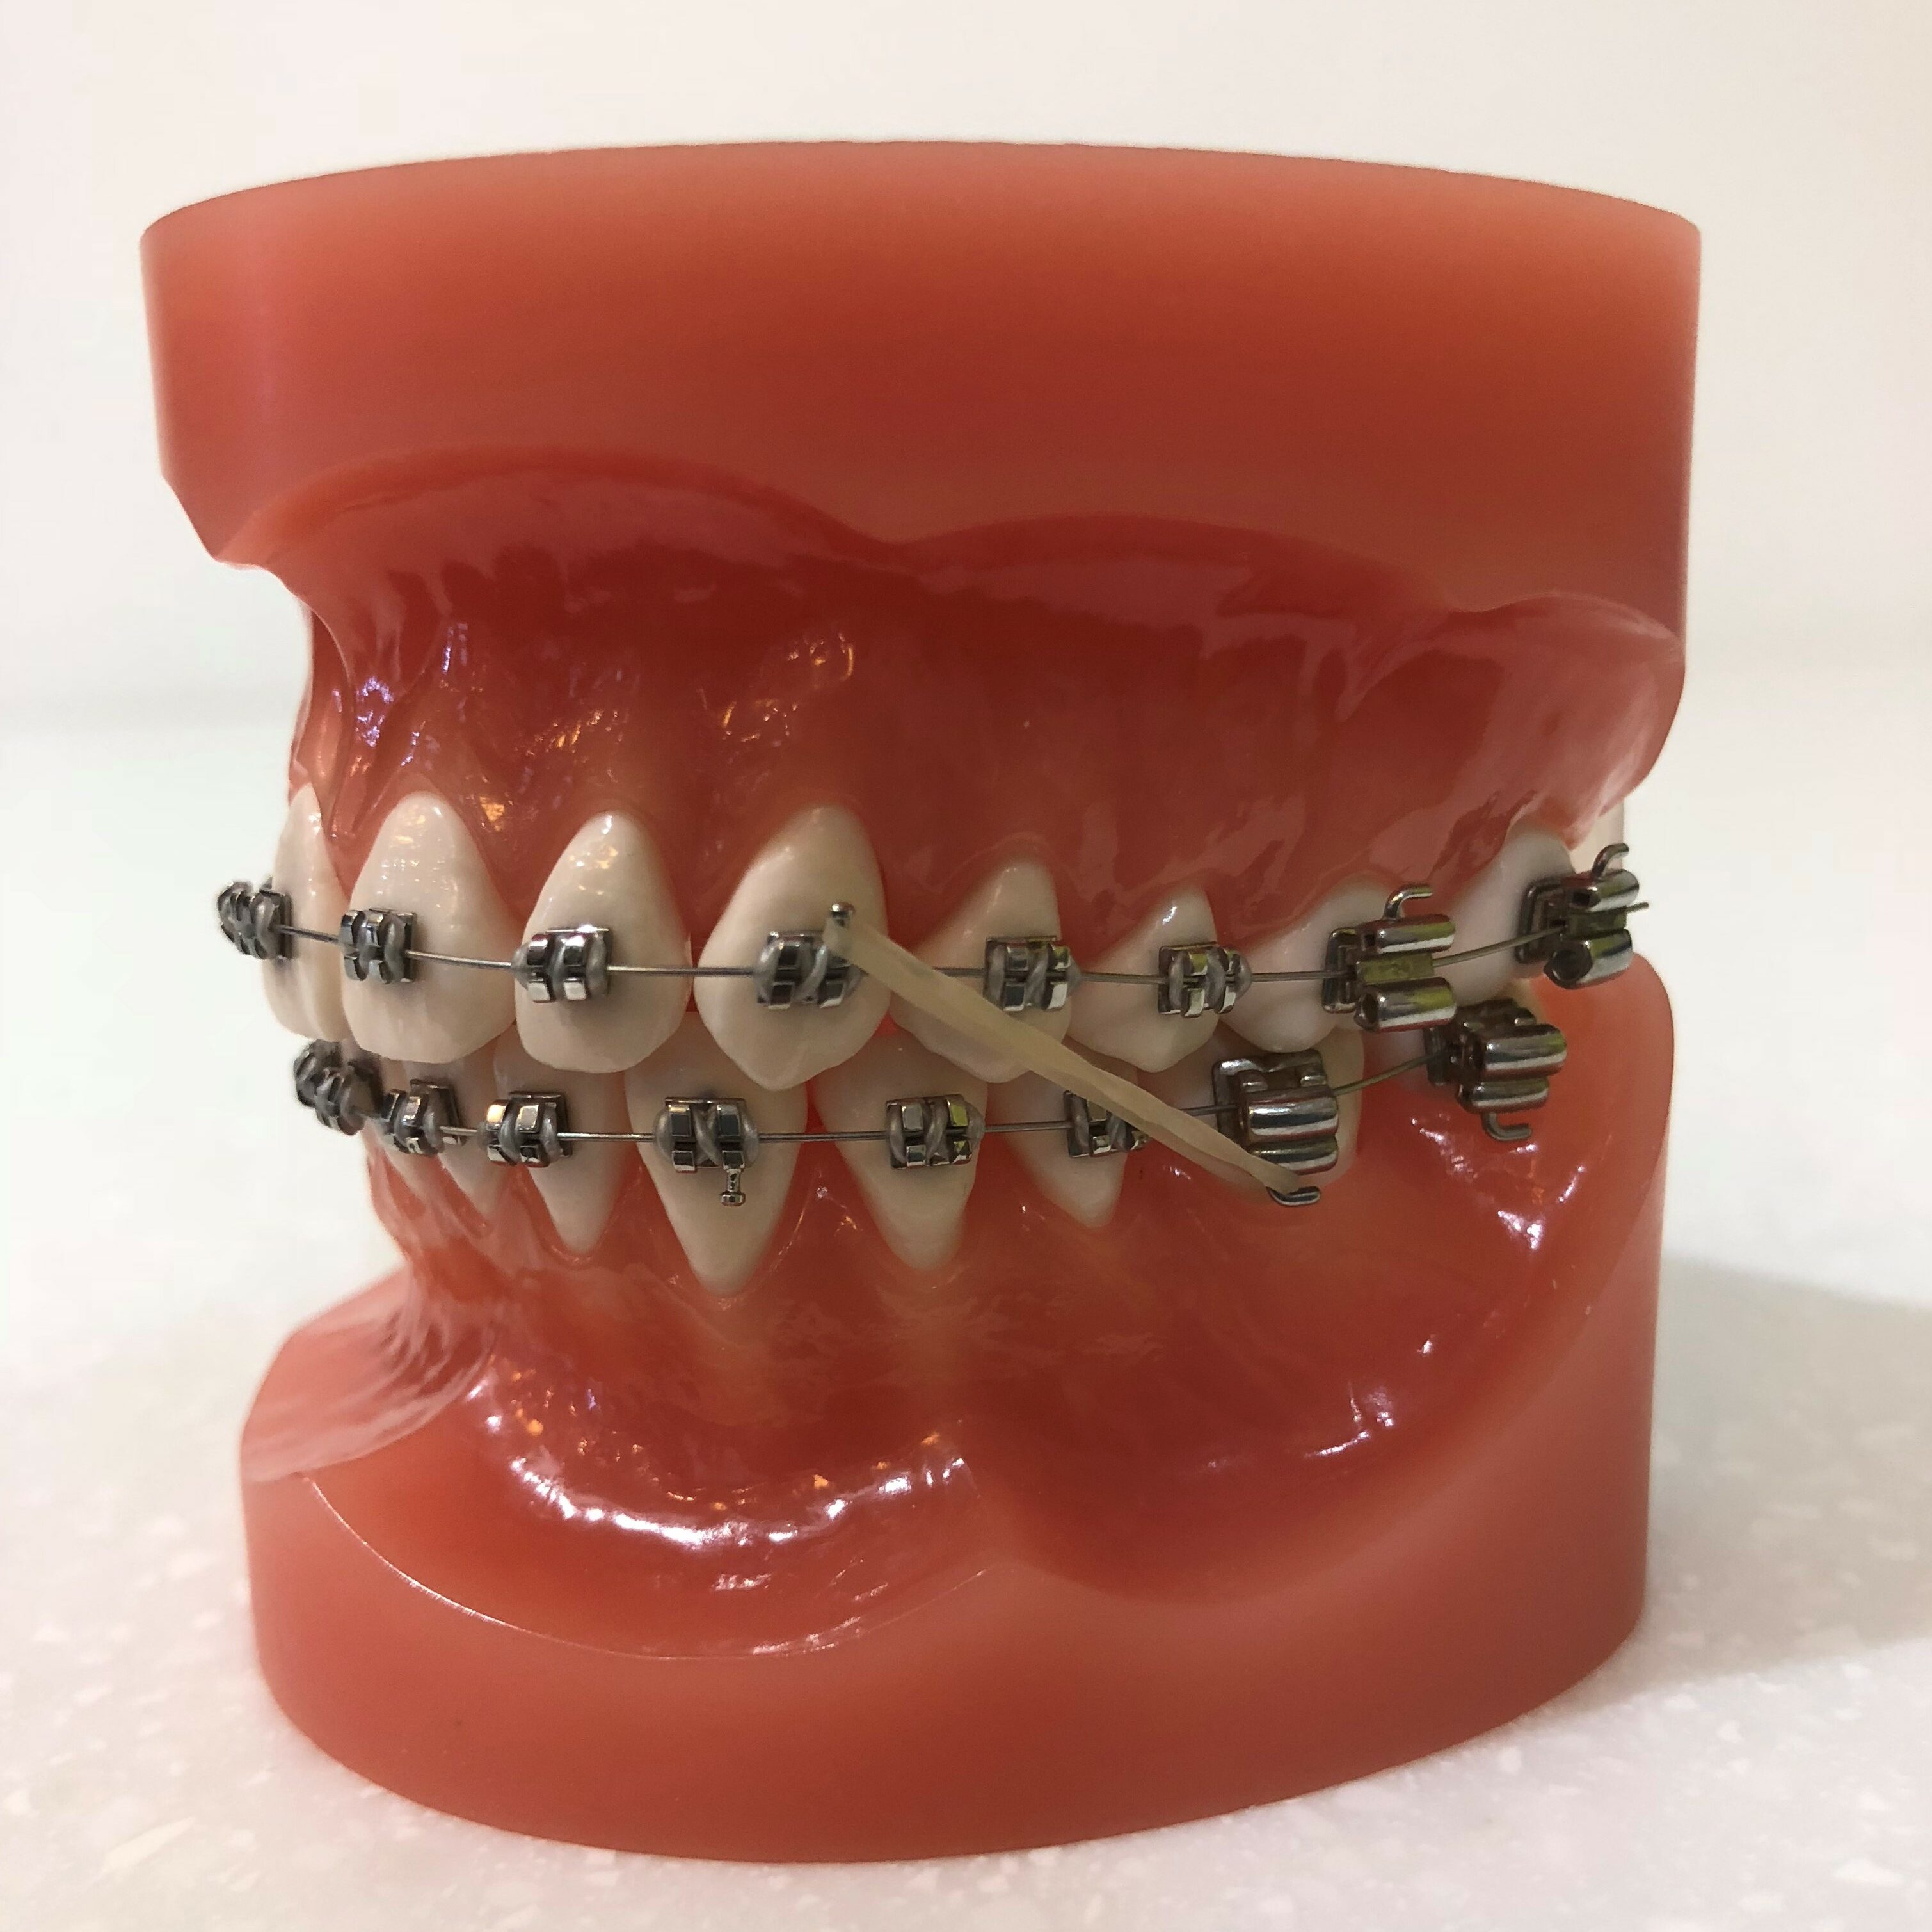 Braces and elastics at Creating great Smiles Bathurst. Mark Cordato, Specialist Orthodontist